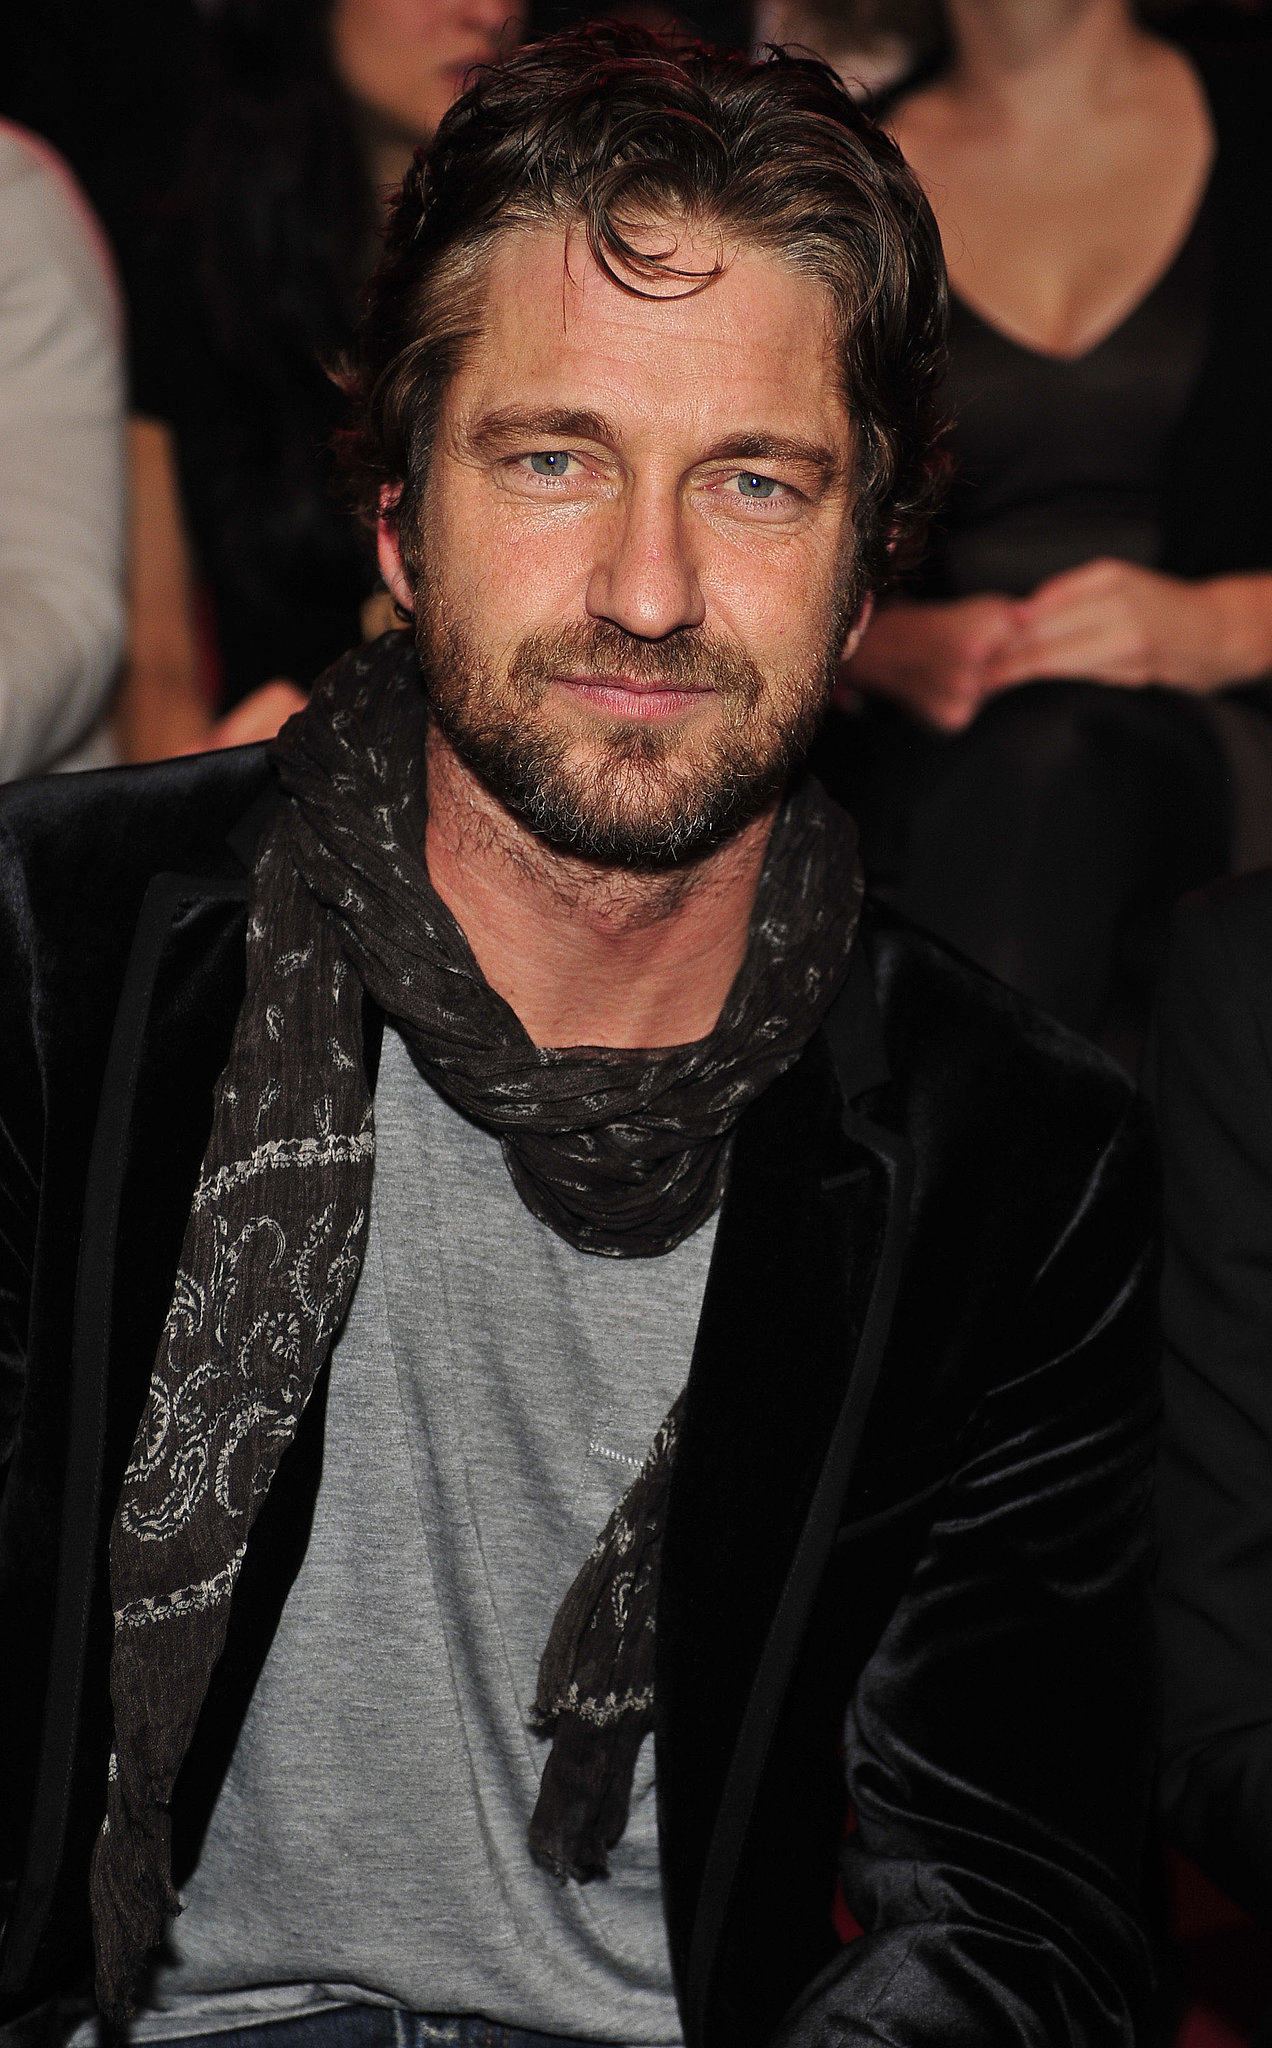 Gerard Butler had a great view of the models during the 2010 show.